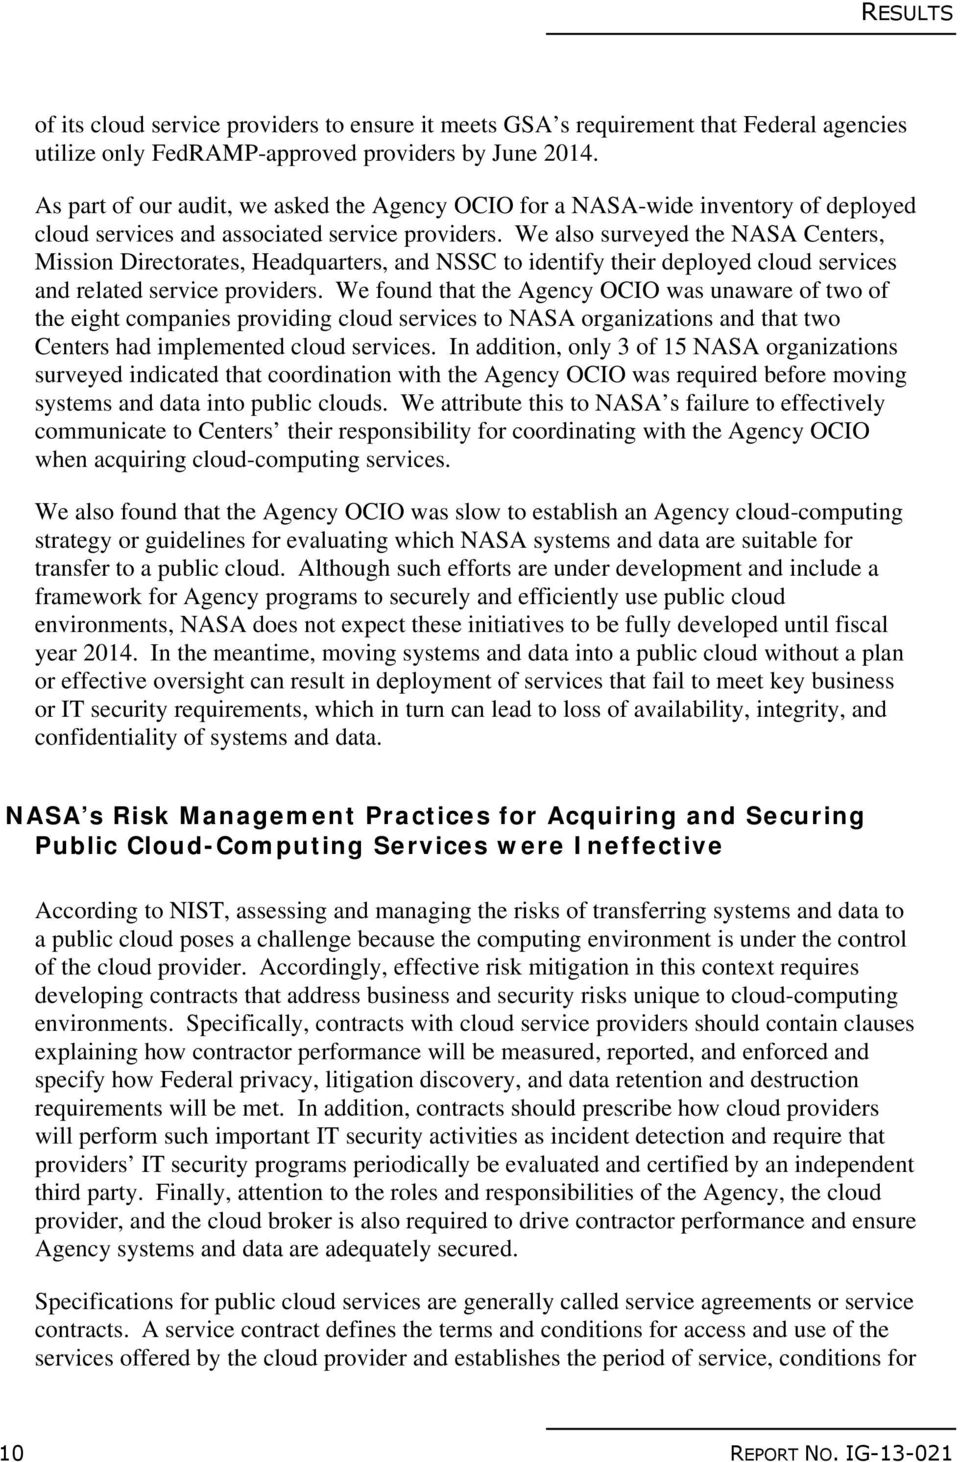 We also surveyed the NASA Centers, Mission Directorates, Headquarters, and NSSC to identify their deployed cloud services and related service providers.